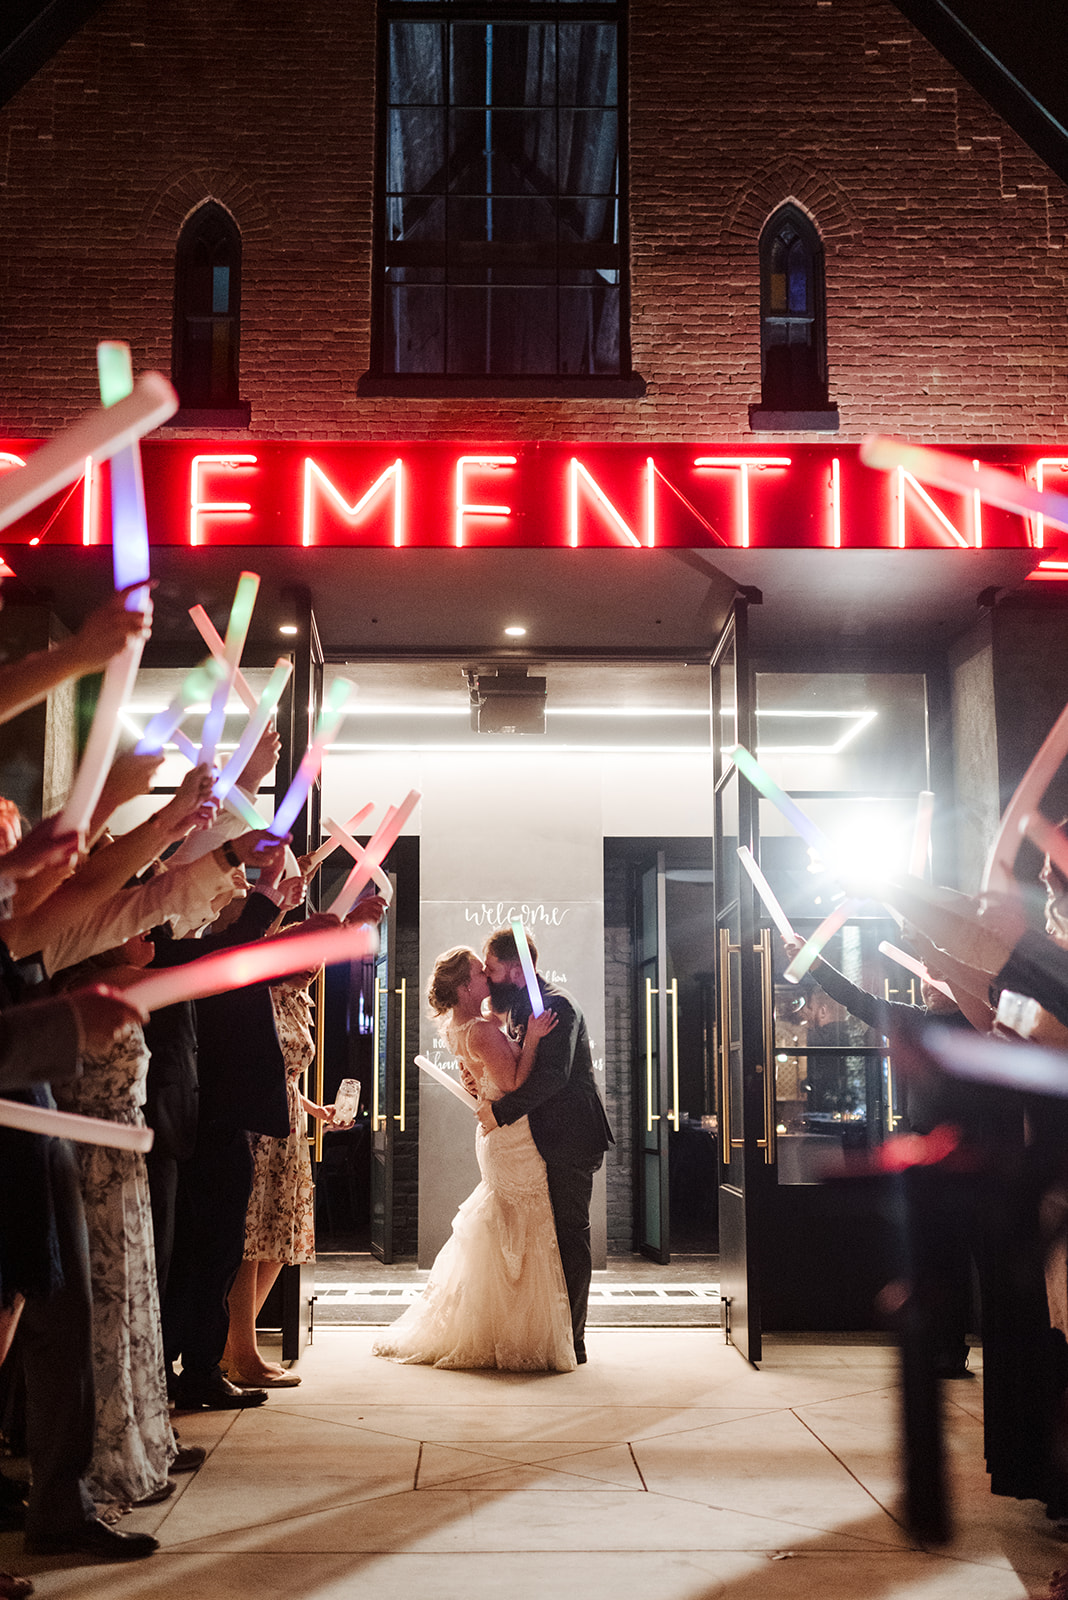 Wedding exit photography: Nashville wedding at Clementine featured on Nashville Bride Guide